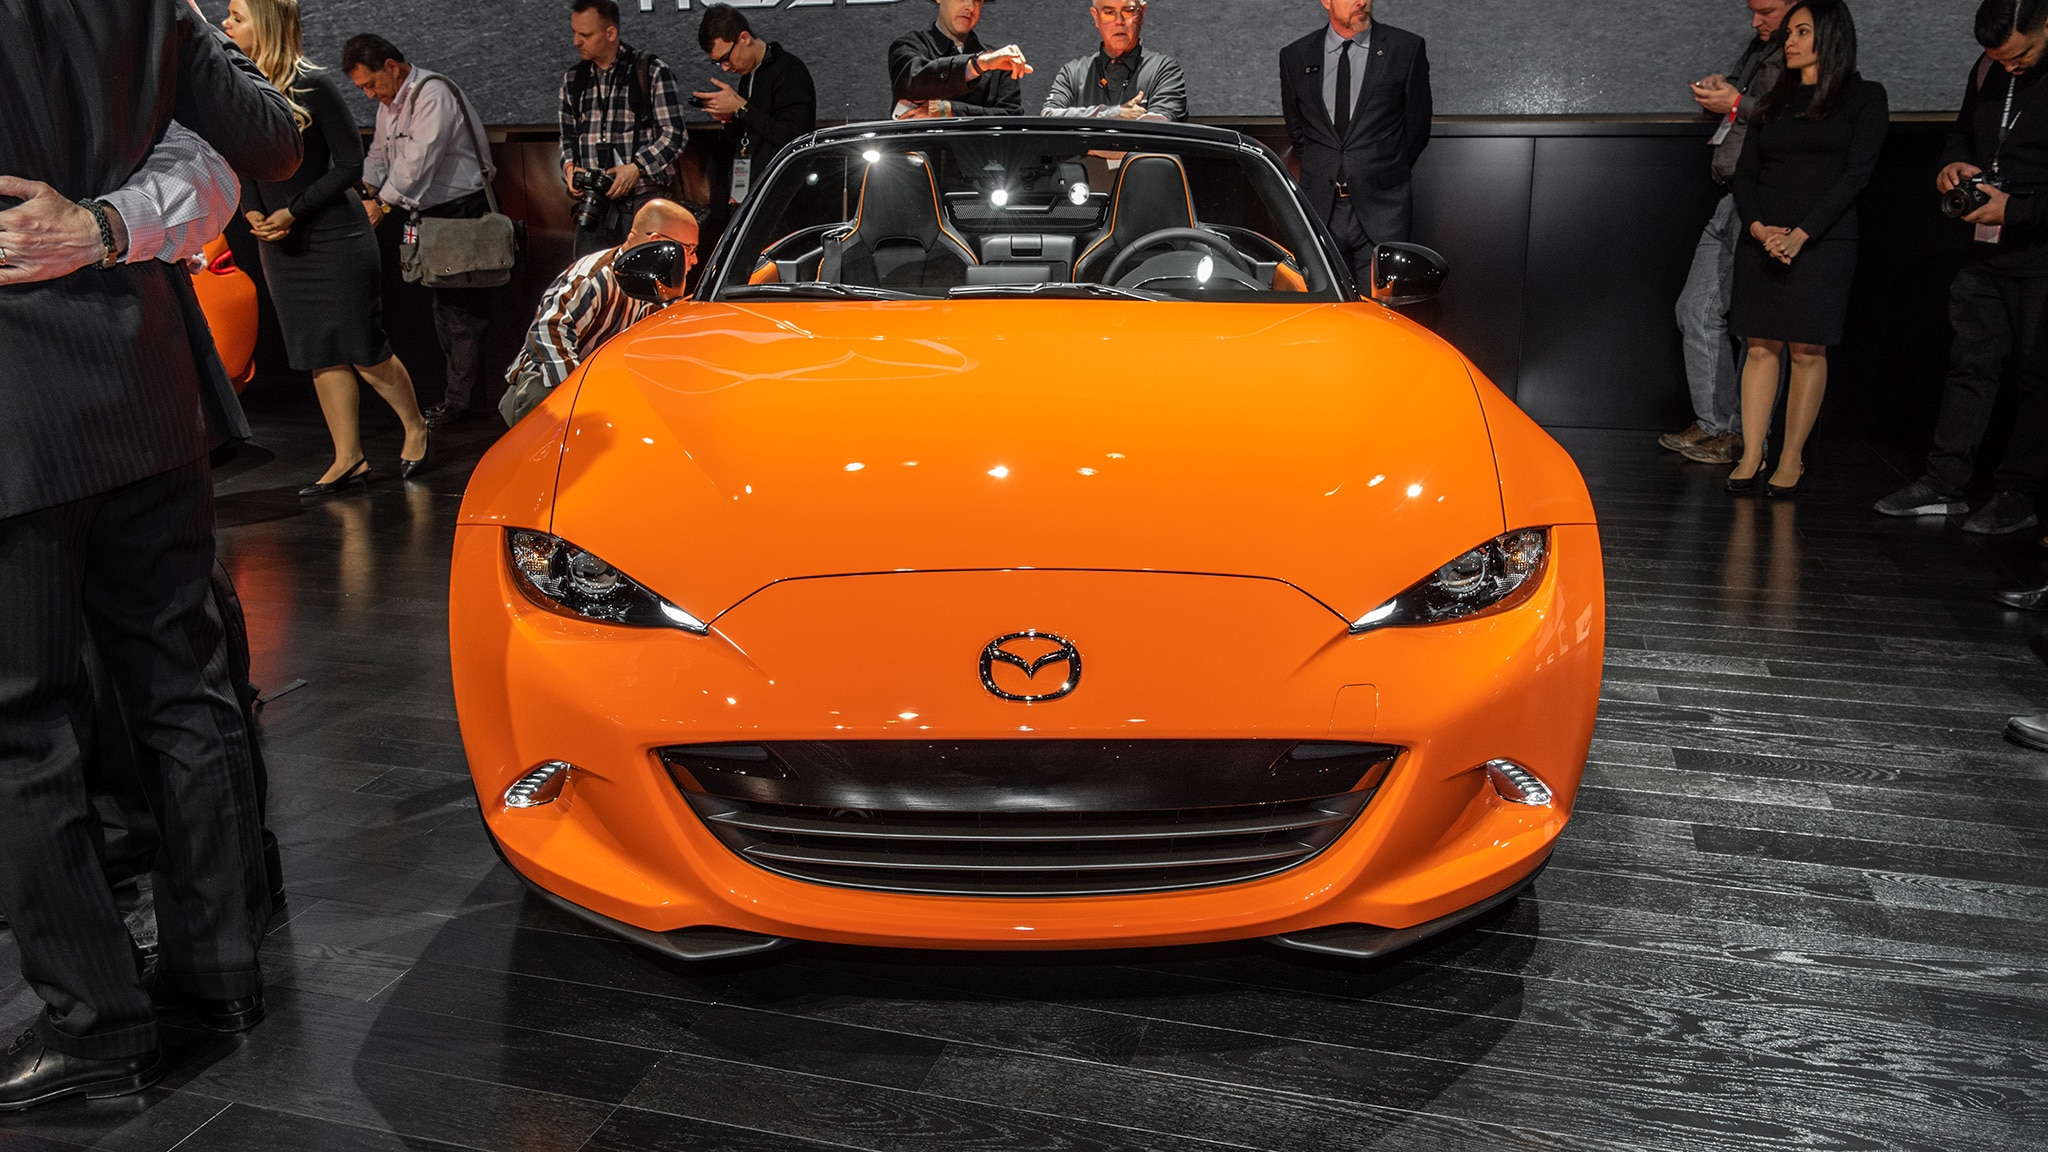 Stuff We Learned About The 30th Anniversary Mazda Miata